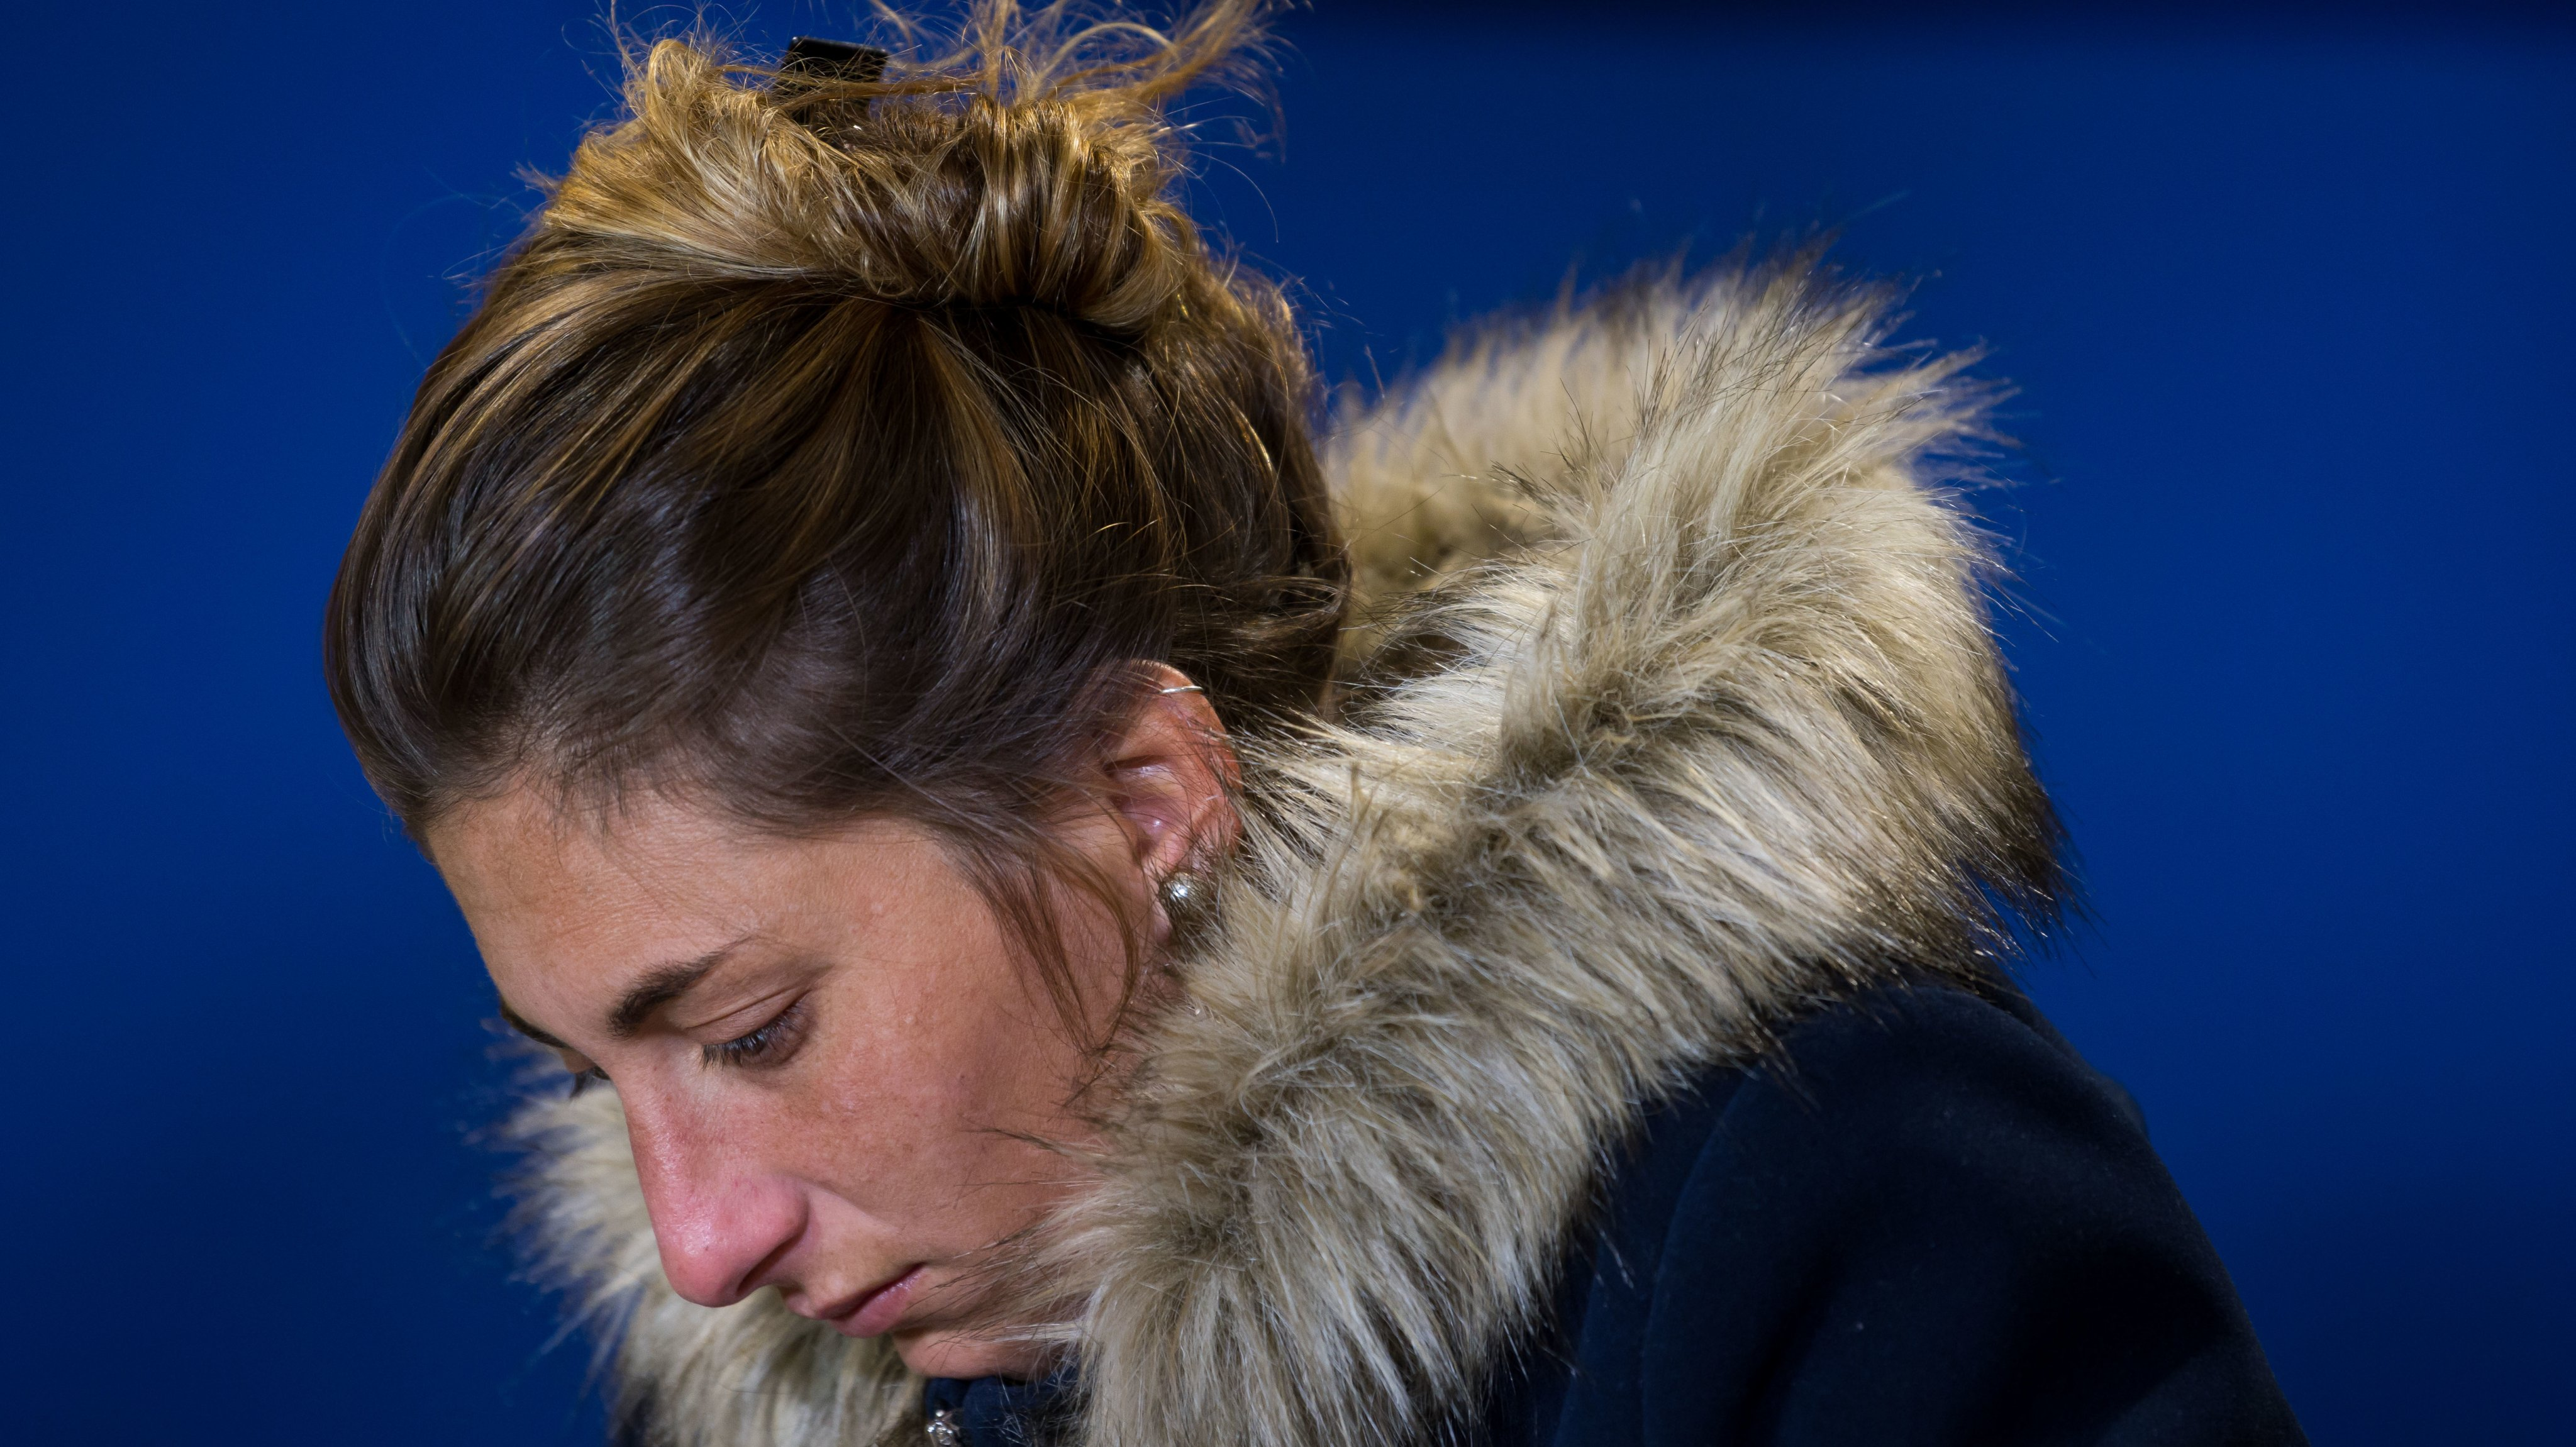 Missing Footballer's Sister Holds Press Conference At Cardiff City Stadium